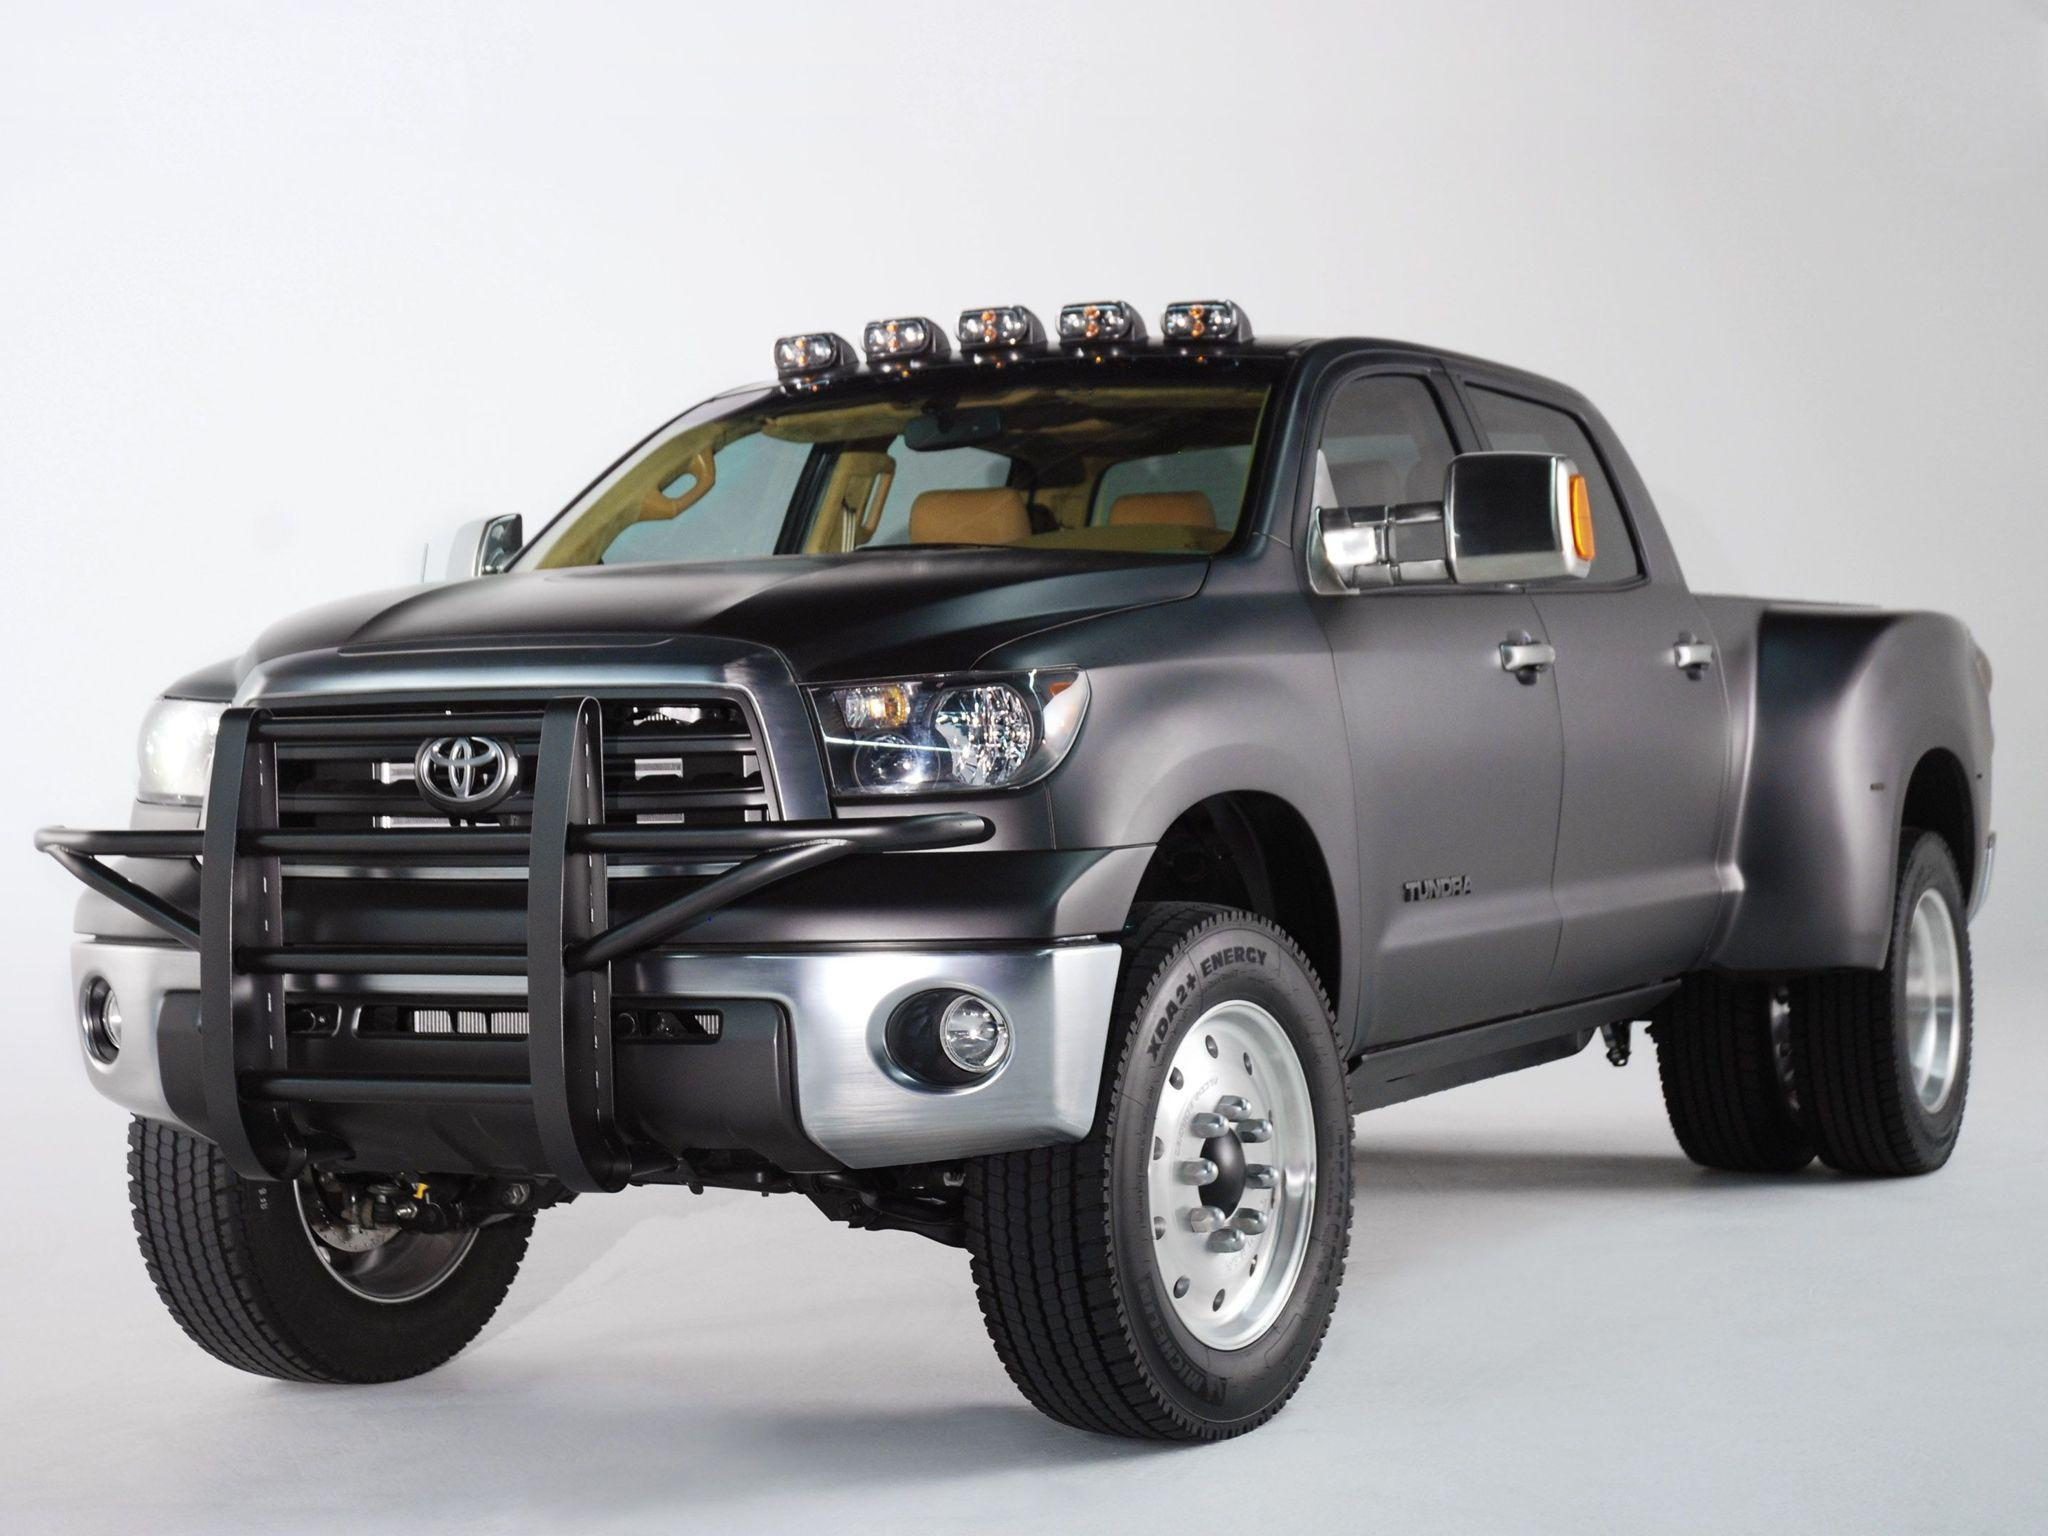 2016 Toyota Tundra Wallpapers HD Photos, Wallpapers and other Image